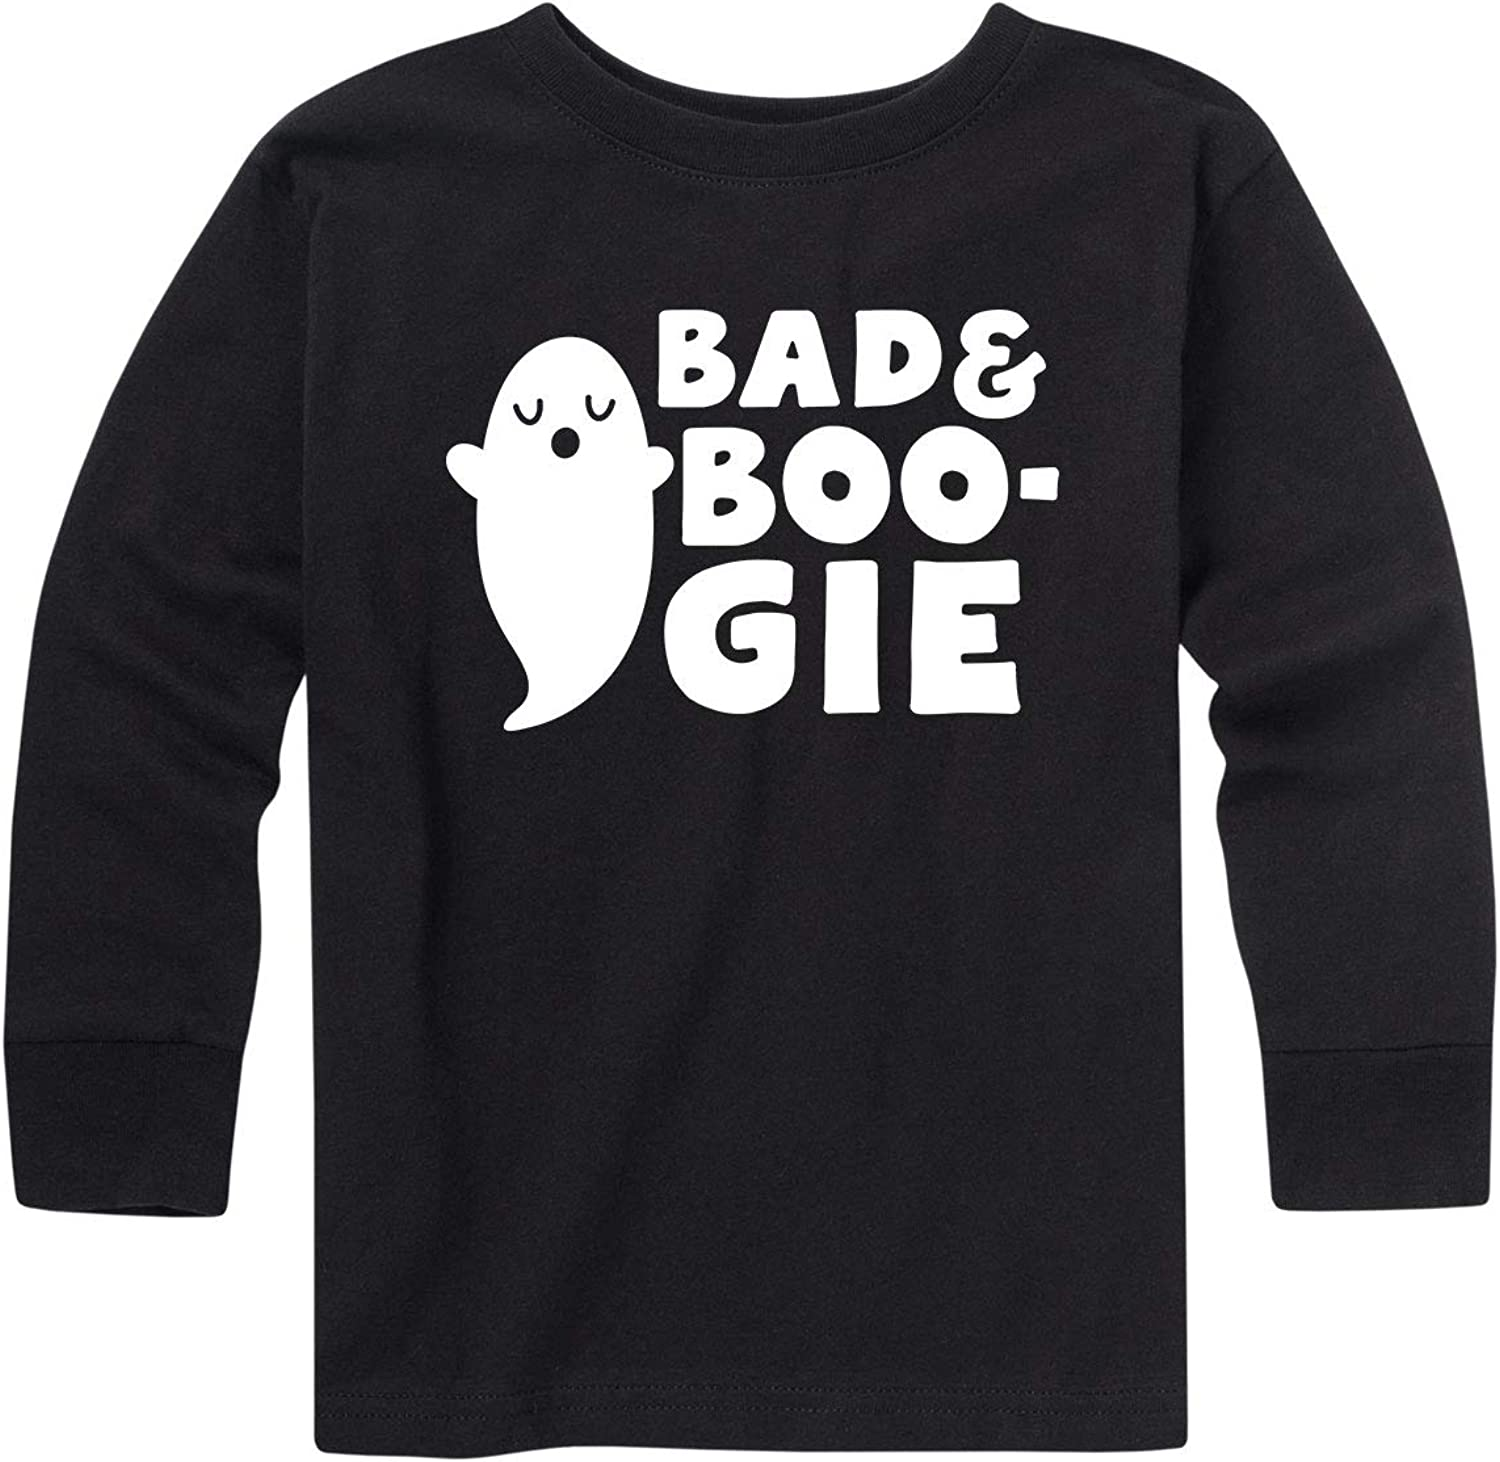 Toddler Long Sleeve Tee Instant Message Bad and Boogie